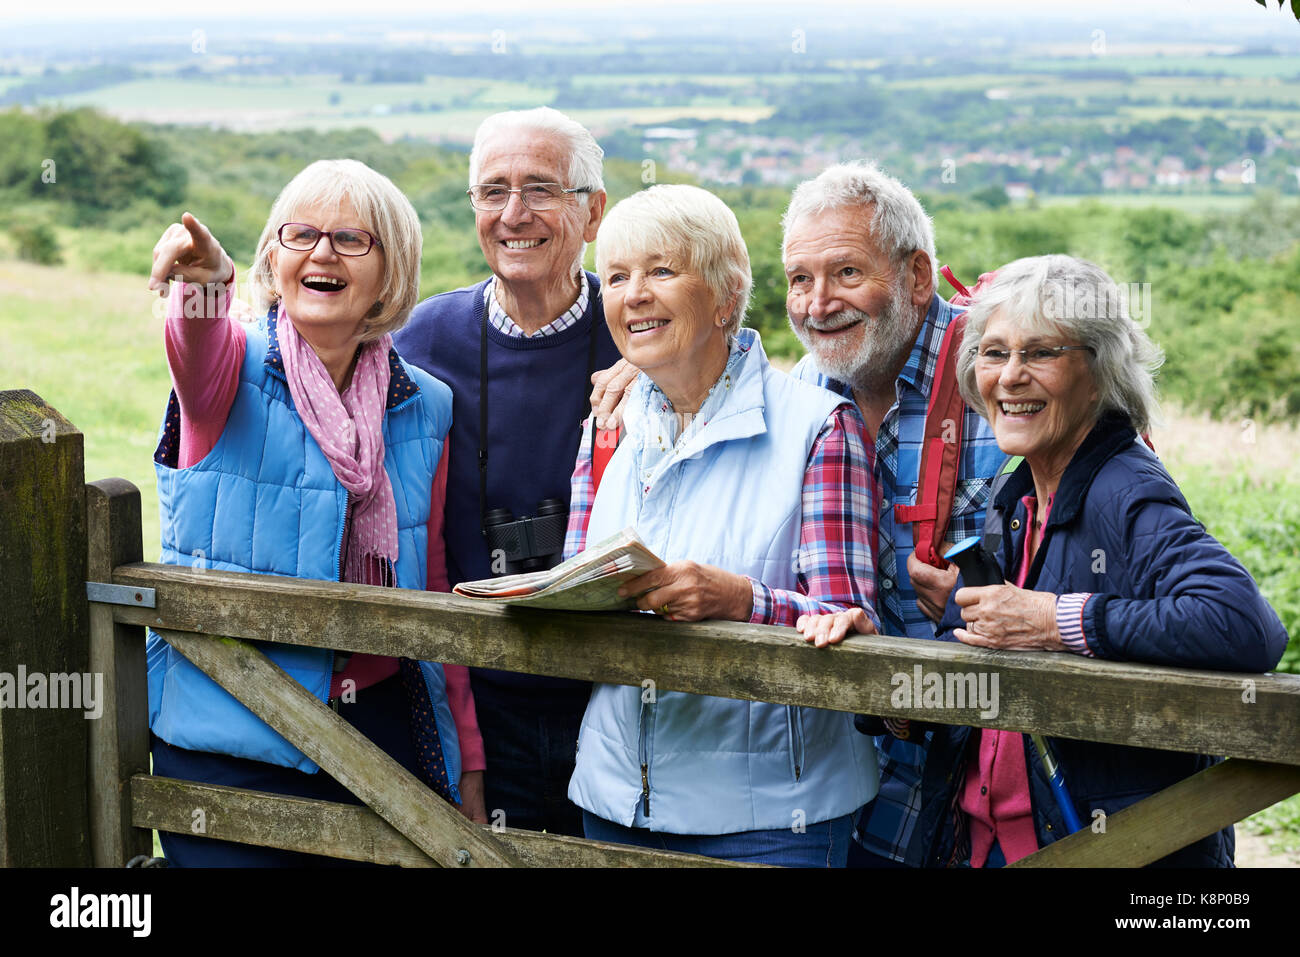 Group Of Senior Friends Hiking In Countryside - Stock Image